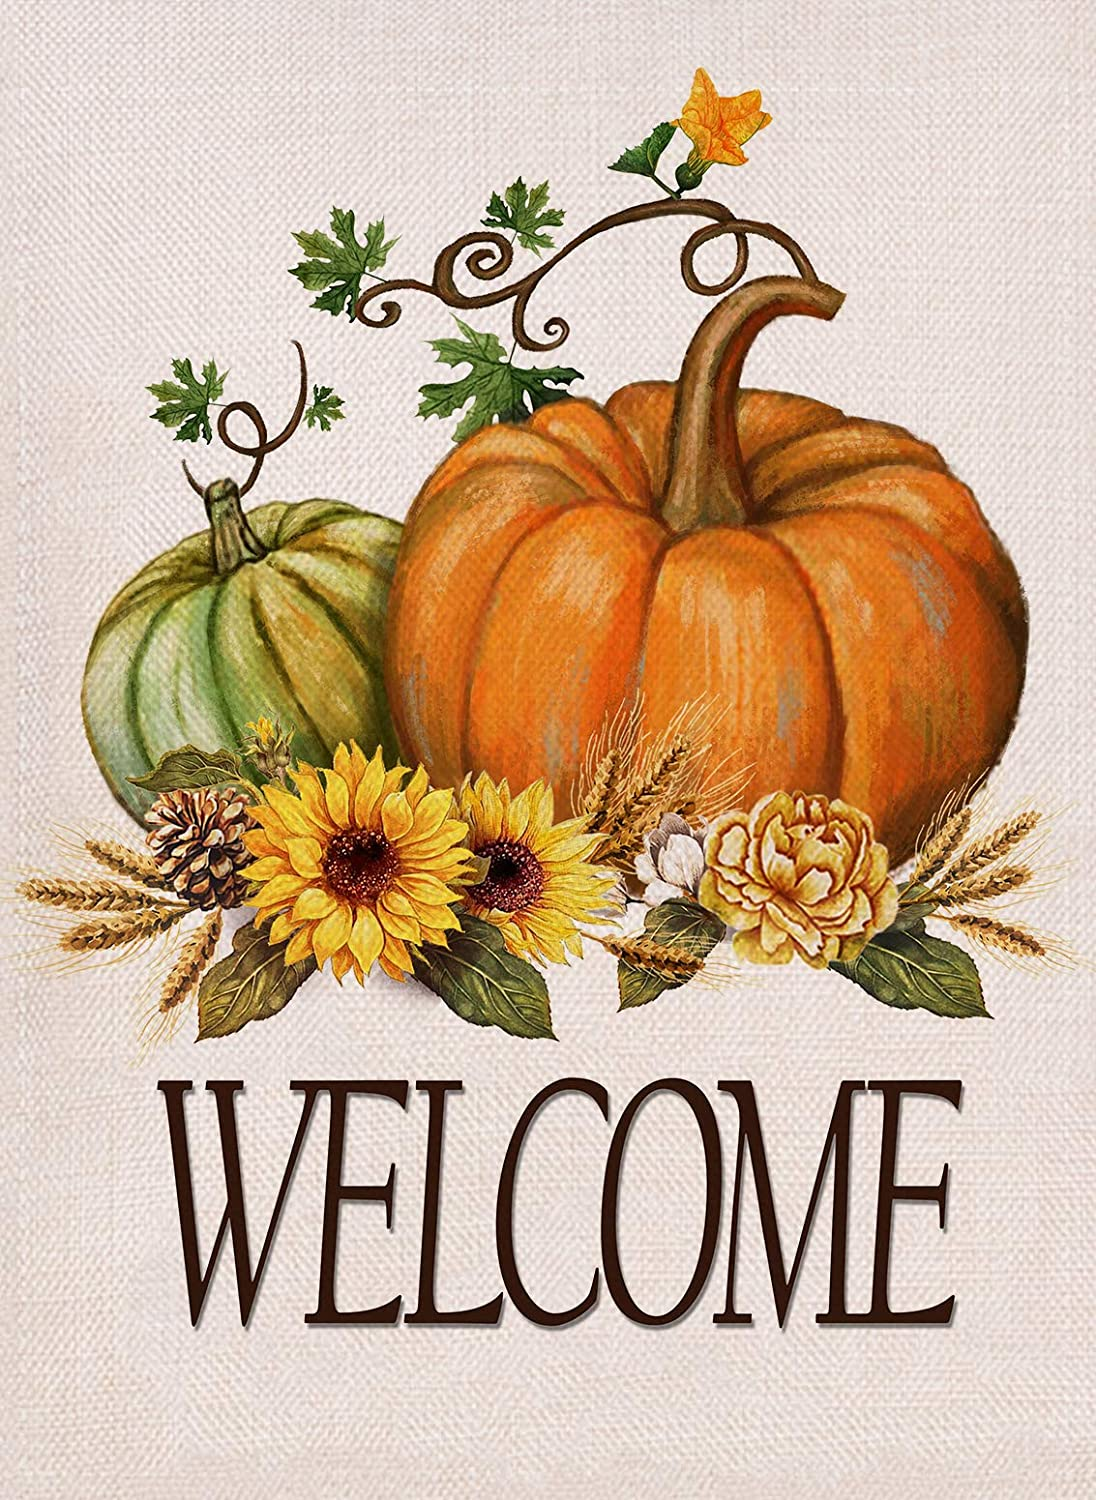 Furiaz Welcome Fall Pumpkin Patch Garden Flag, House Yard Outdoor Decorative Small Flag, Autumn Harvest Sunflower Wheat Seasonal Outside Decorations, Thanksgiving Home Decor Flag Double Sided 12 x 18